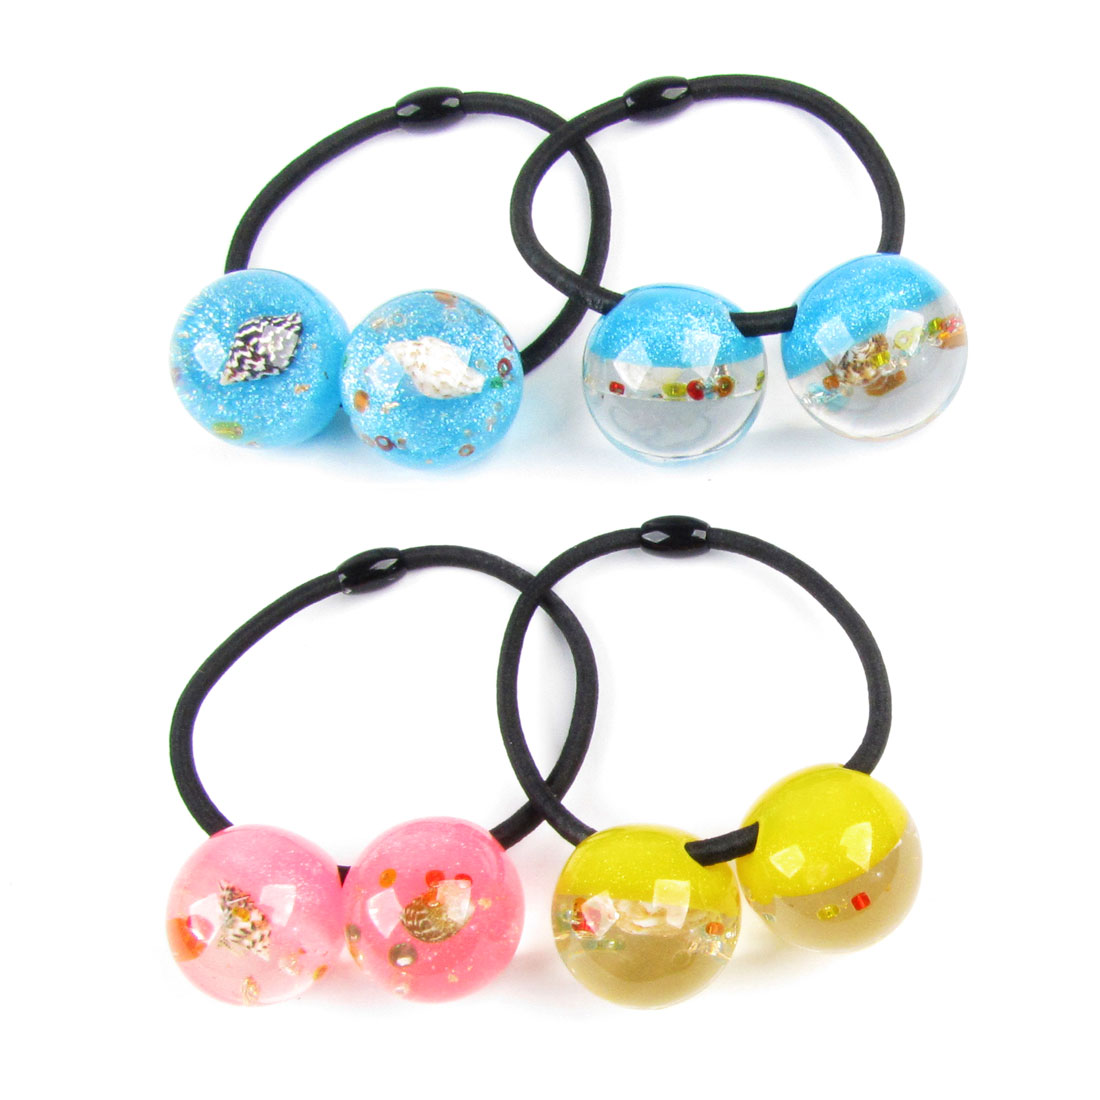 4pcs Girls Shell Glittery Powder Inlaid Plastic Colored Beads Decor Hair Band Tie